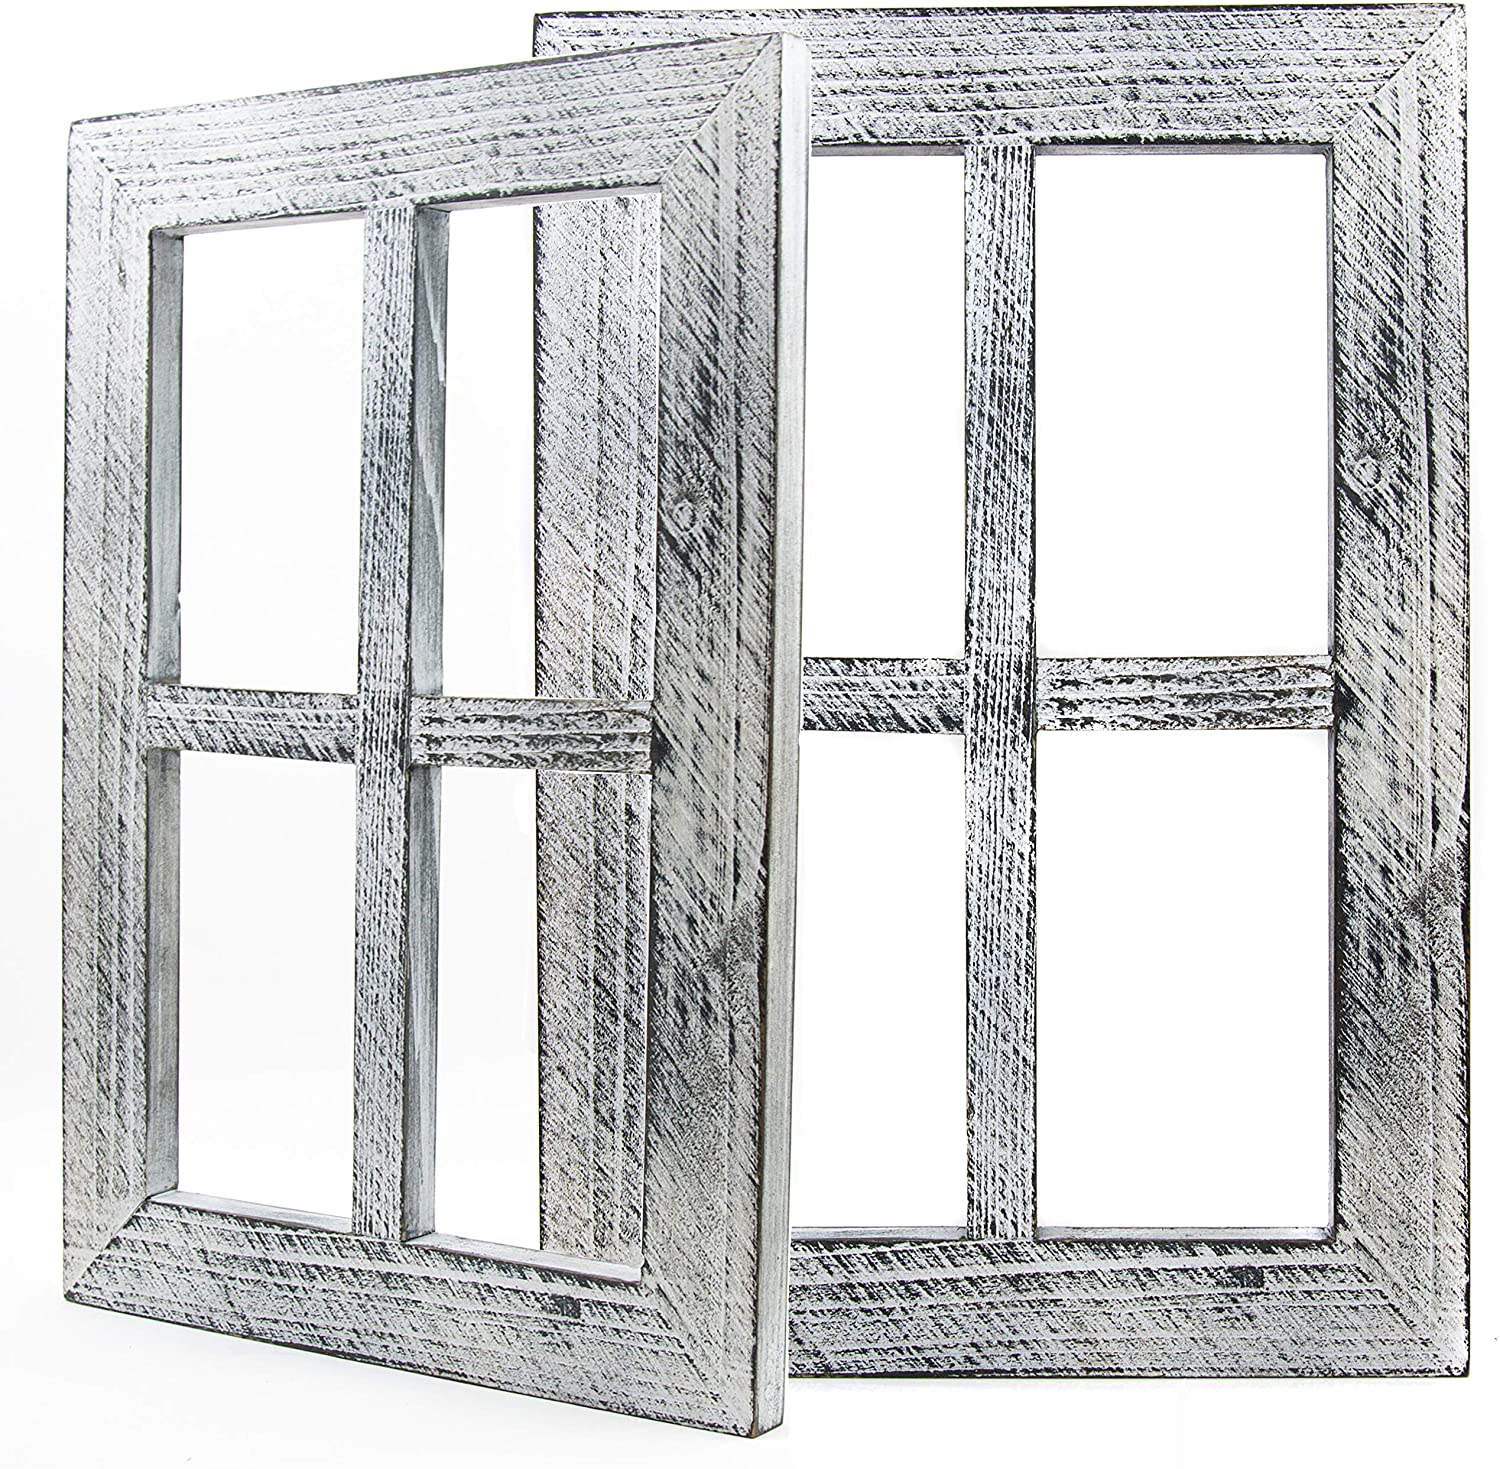 Daisy S House Distressed Window Frame Wall Decor Set Of 2 Rustic Window Pane For Sale Online Ebay